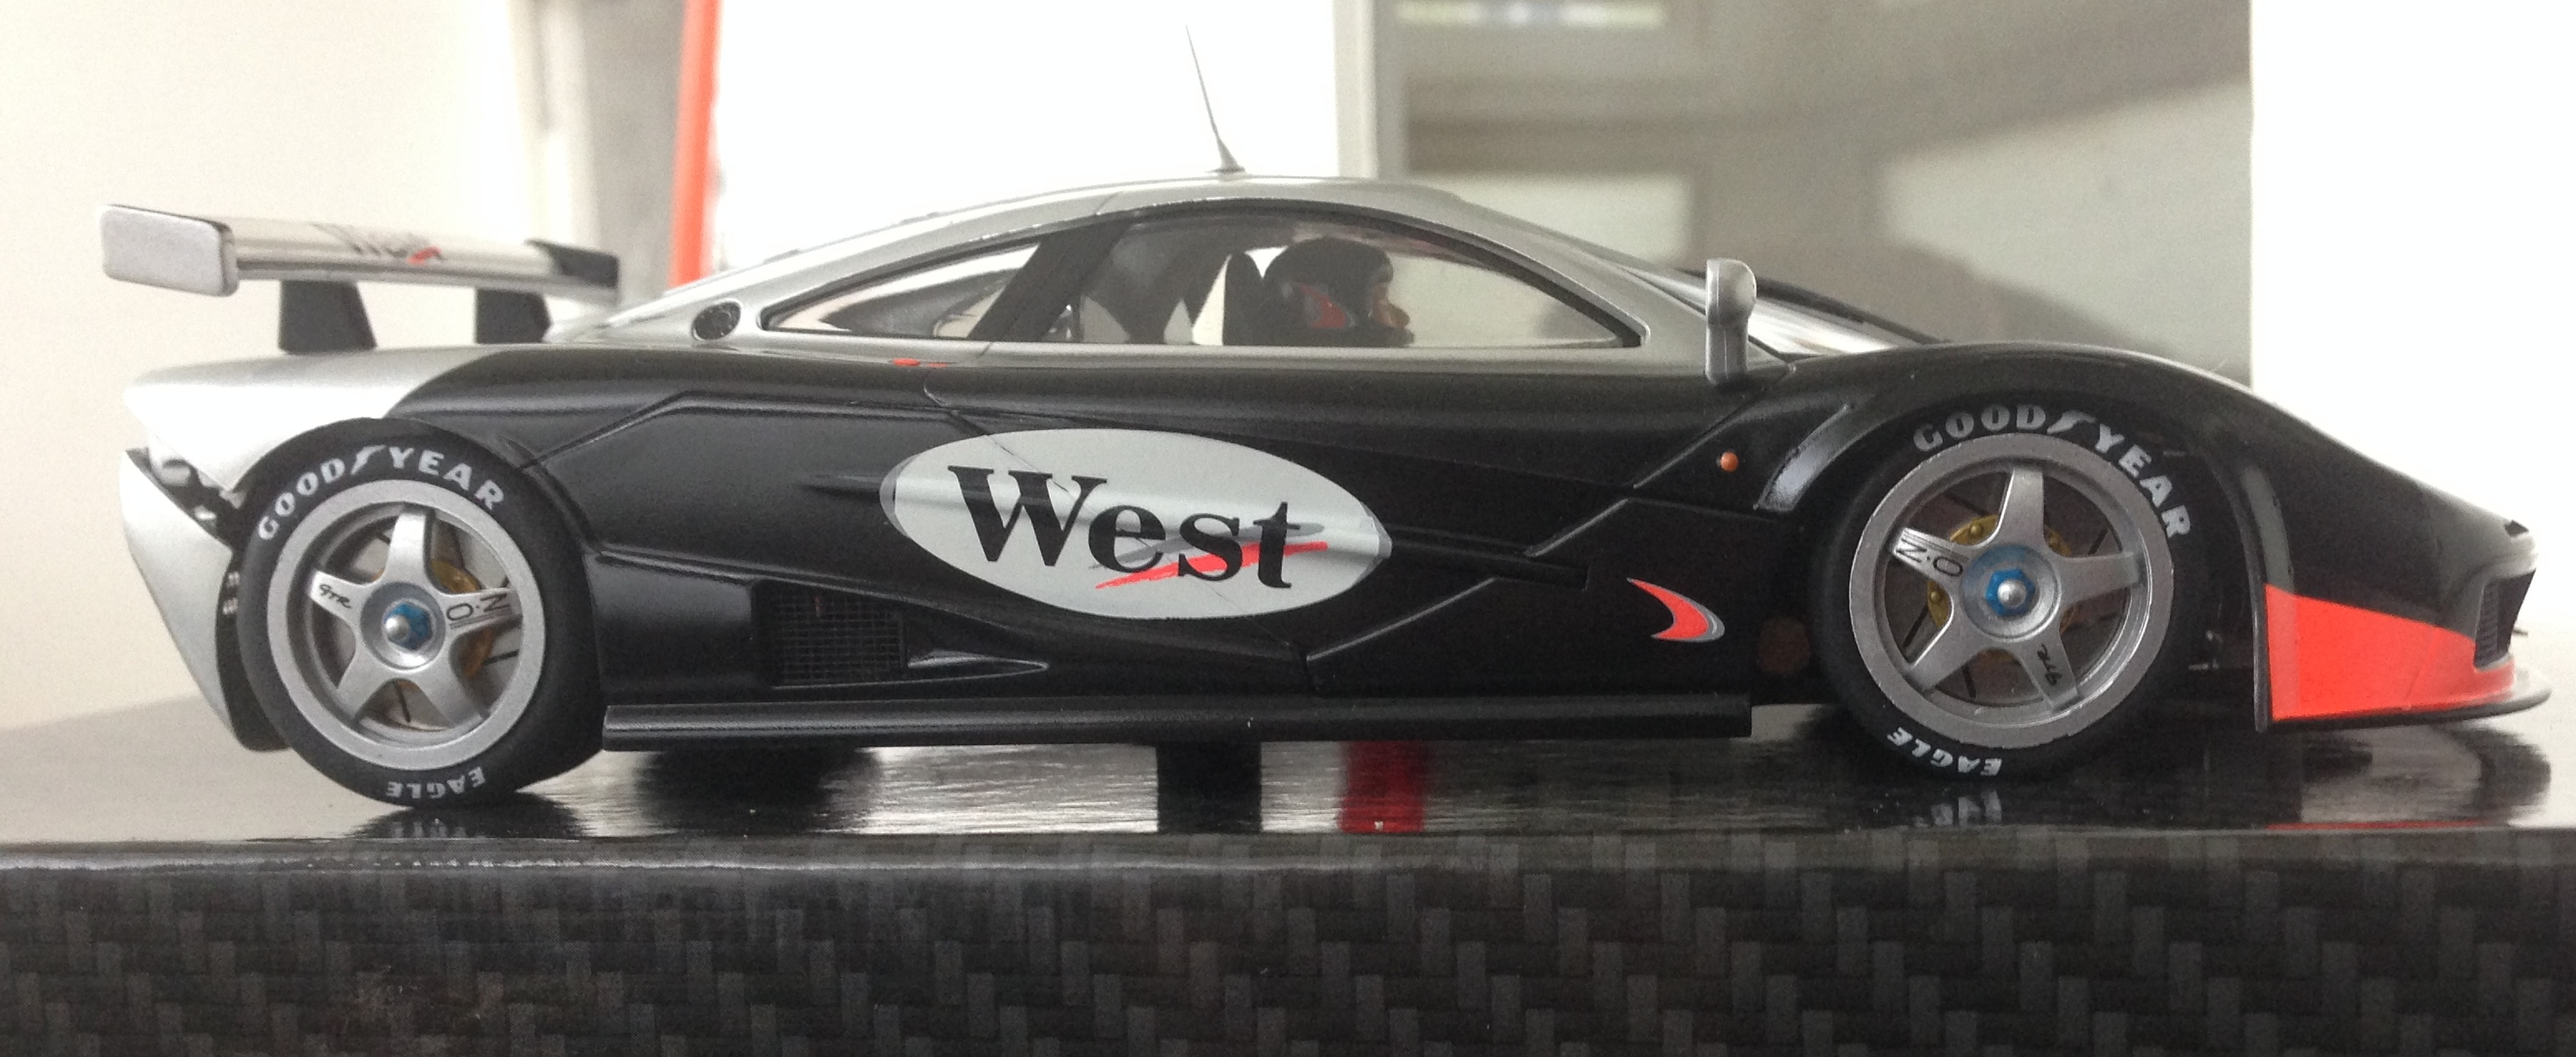 McLaren F1 GTR West BRM035 1 Gallery freeslotter